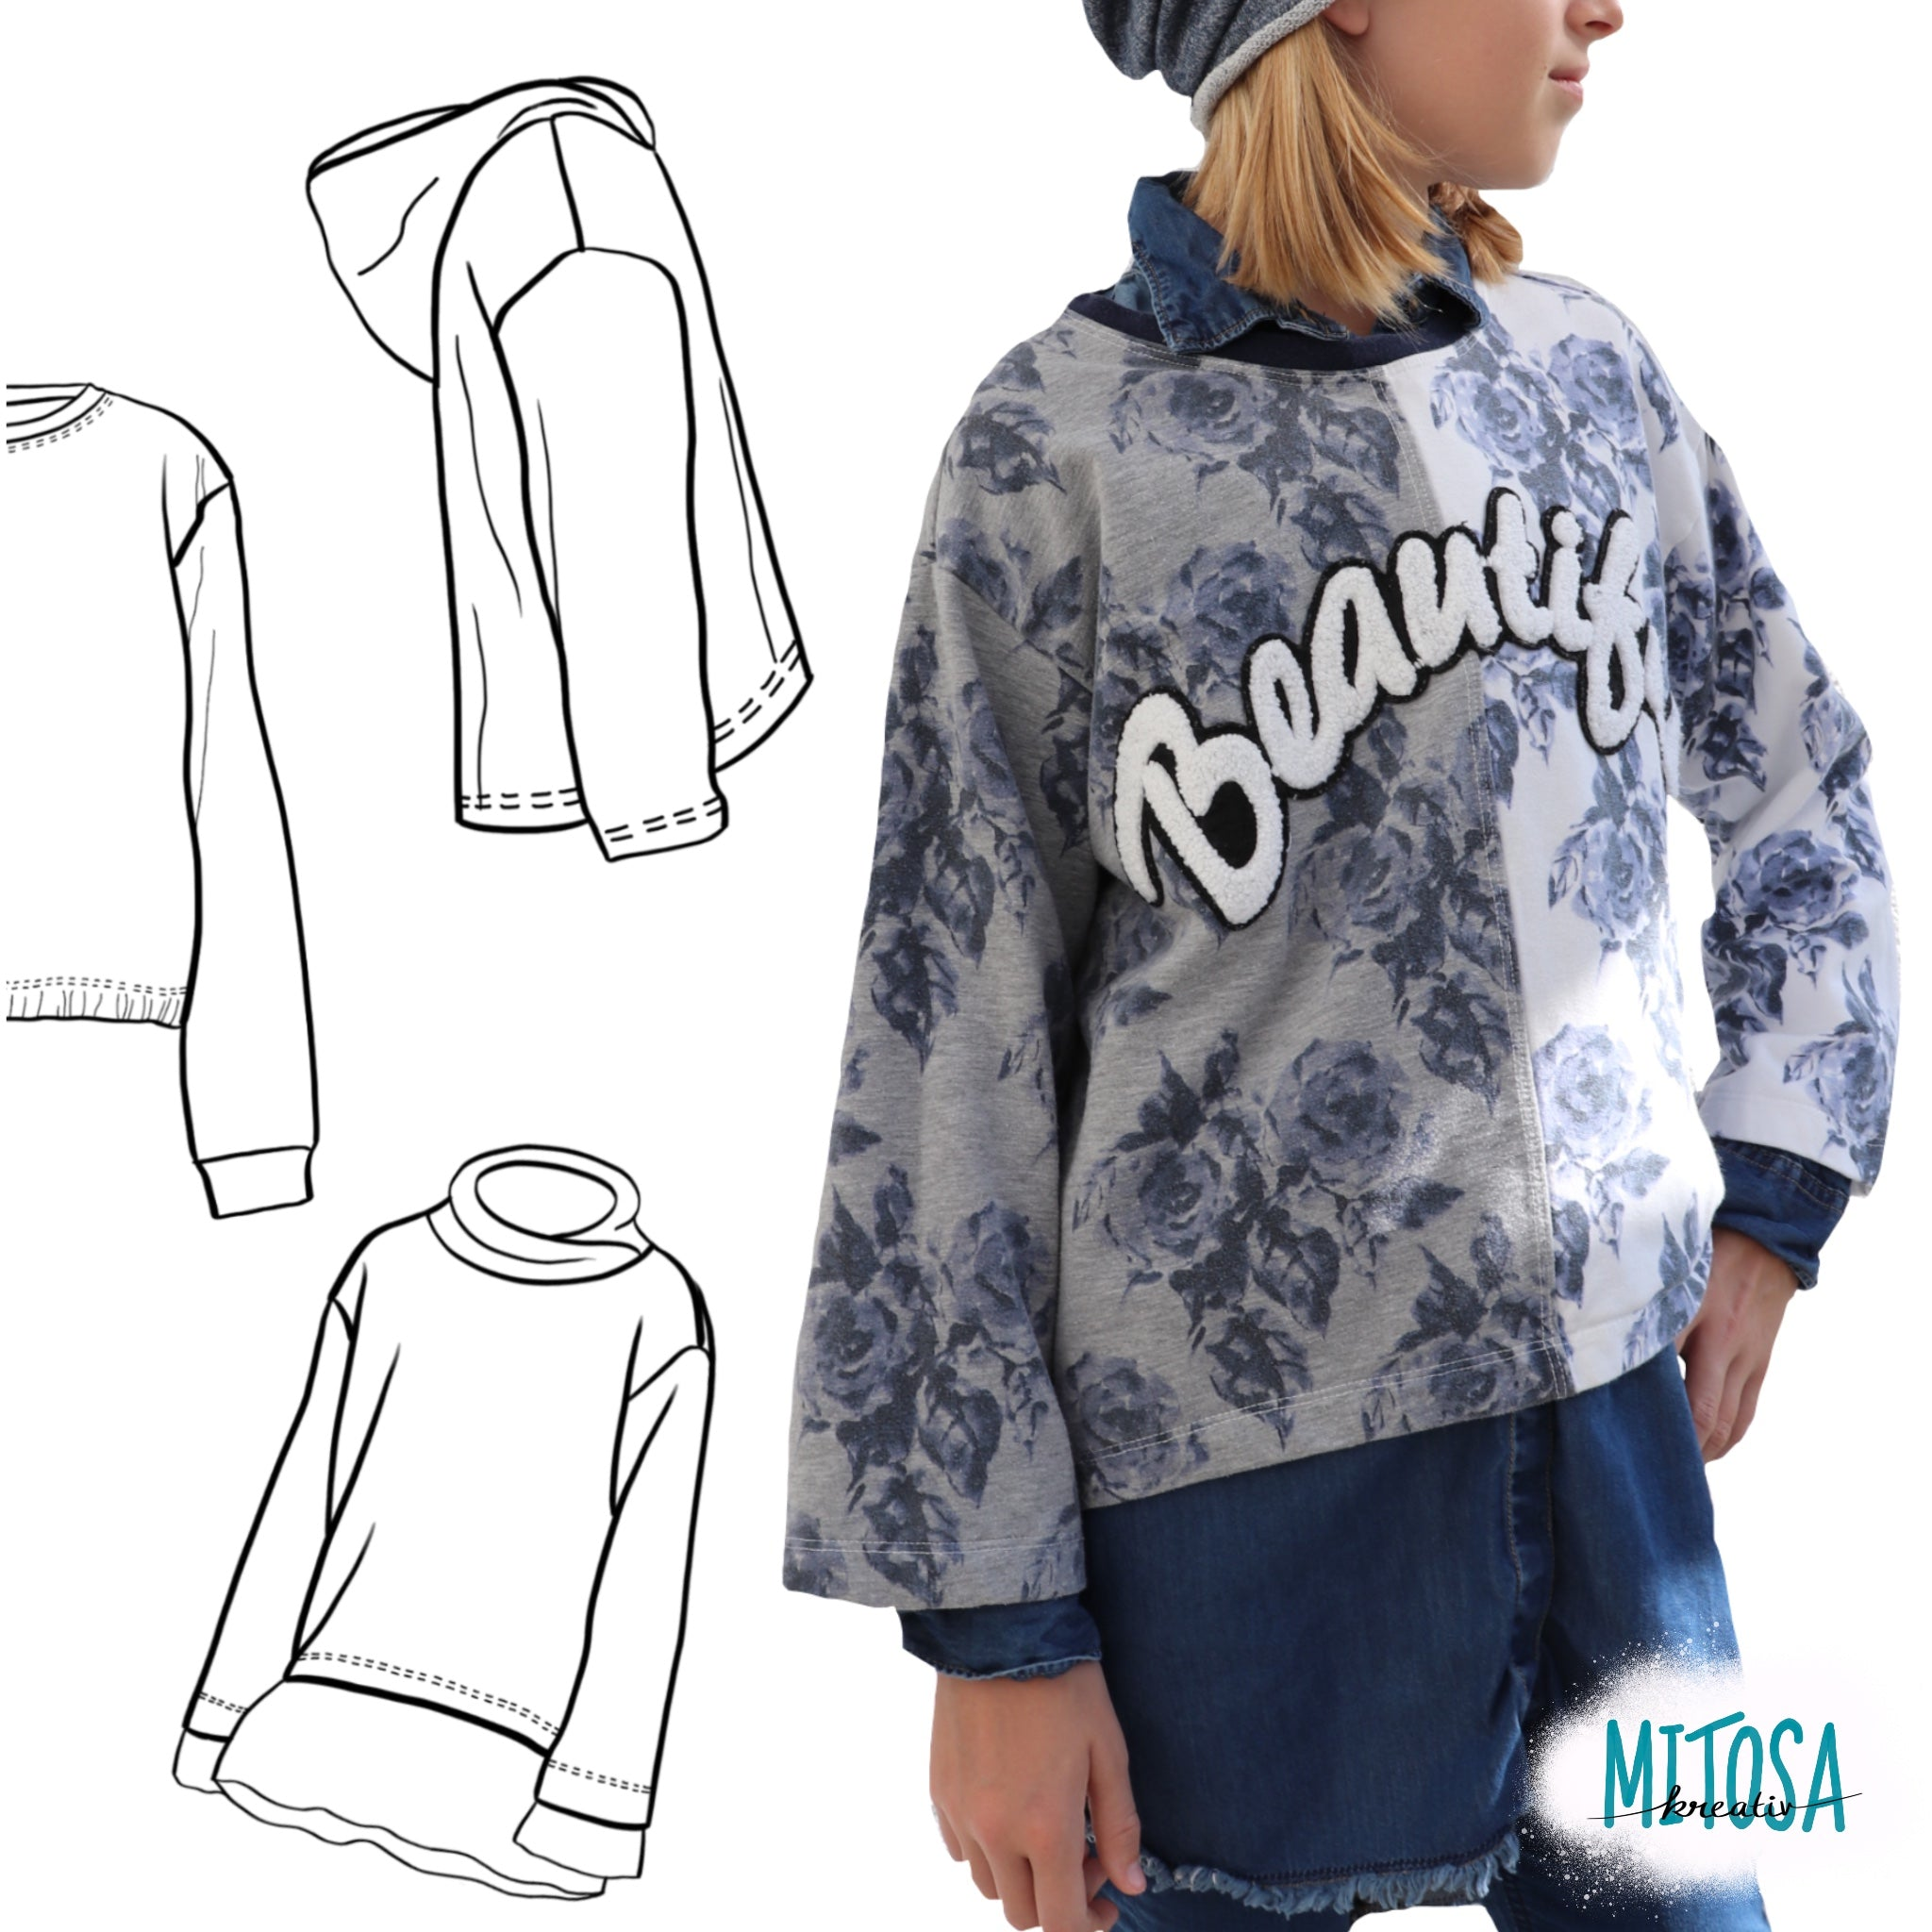 "OVERSIZED Pulli Kids"" 80-164 (Schnittmuster/Ebook)"